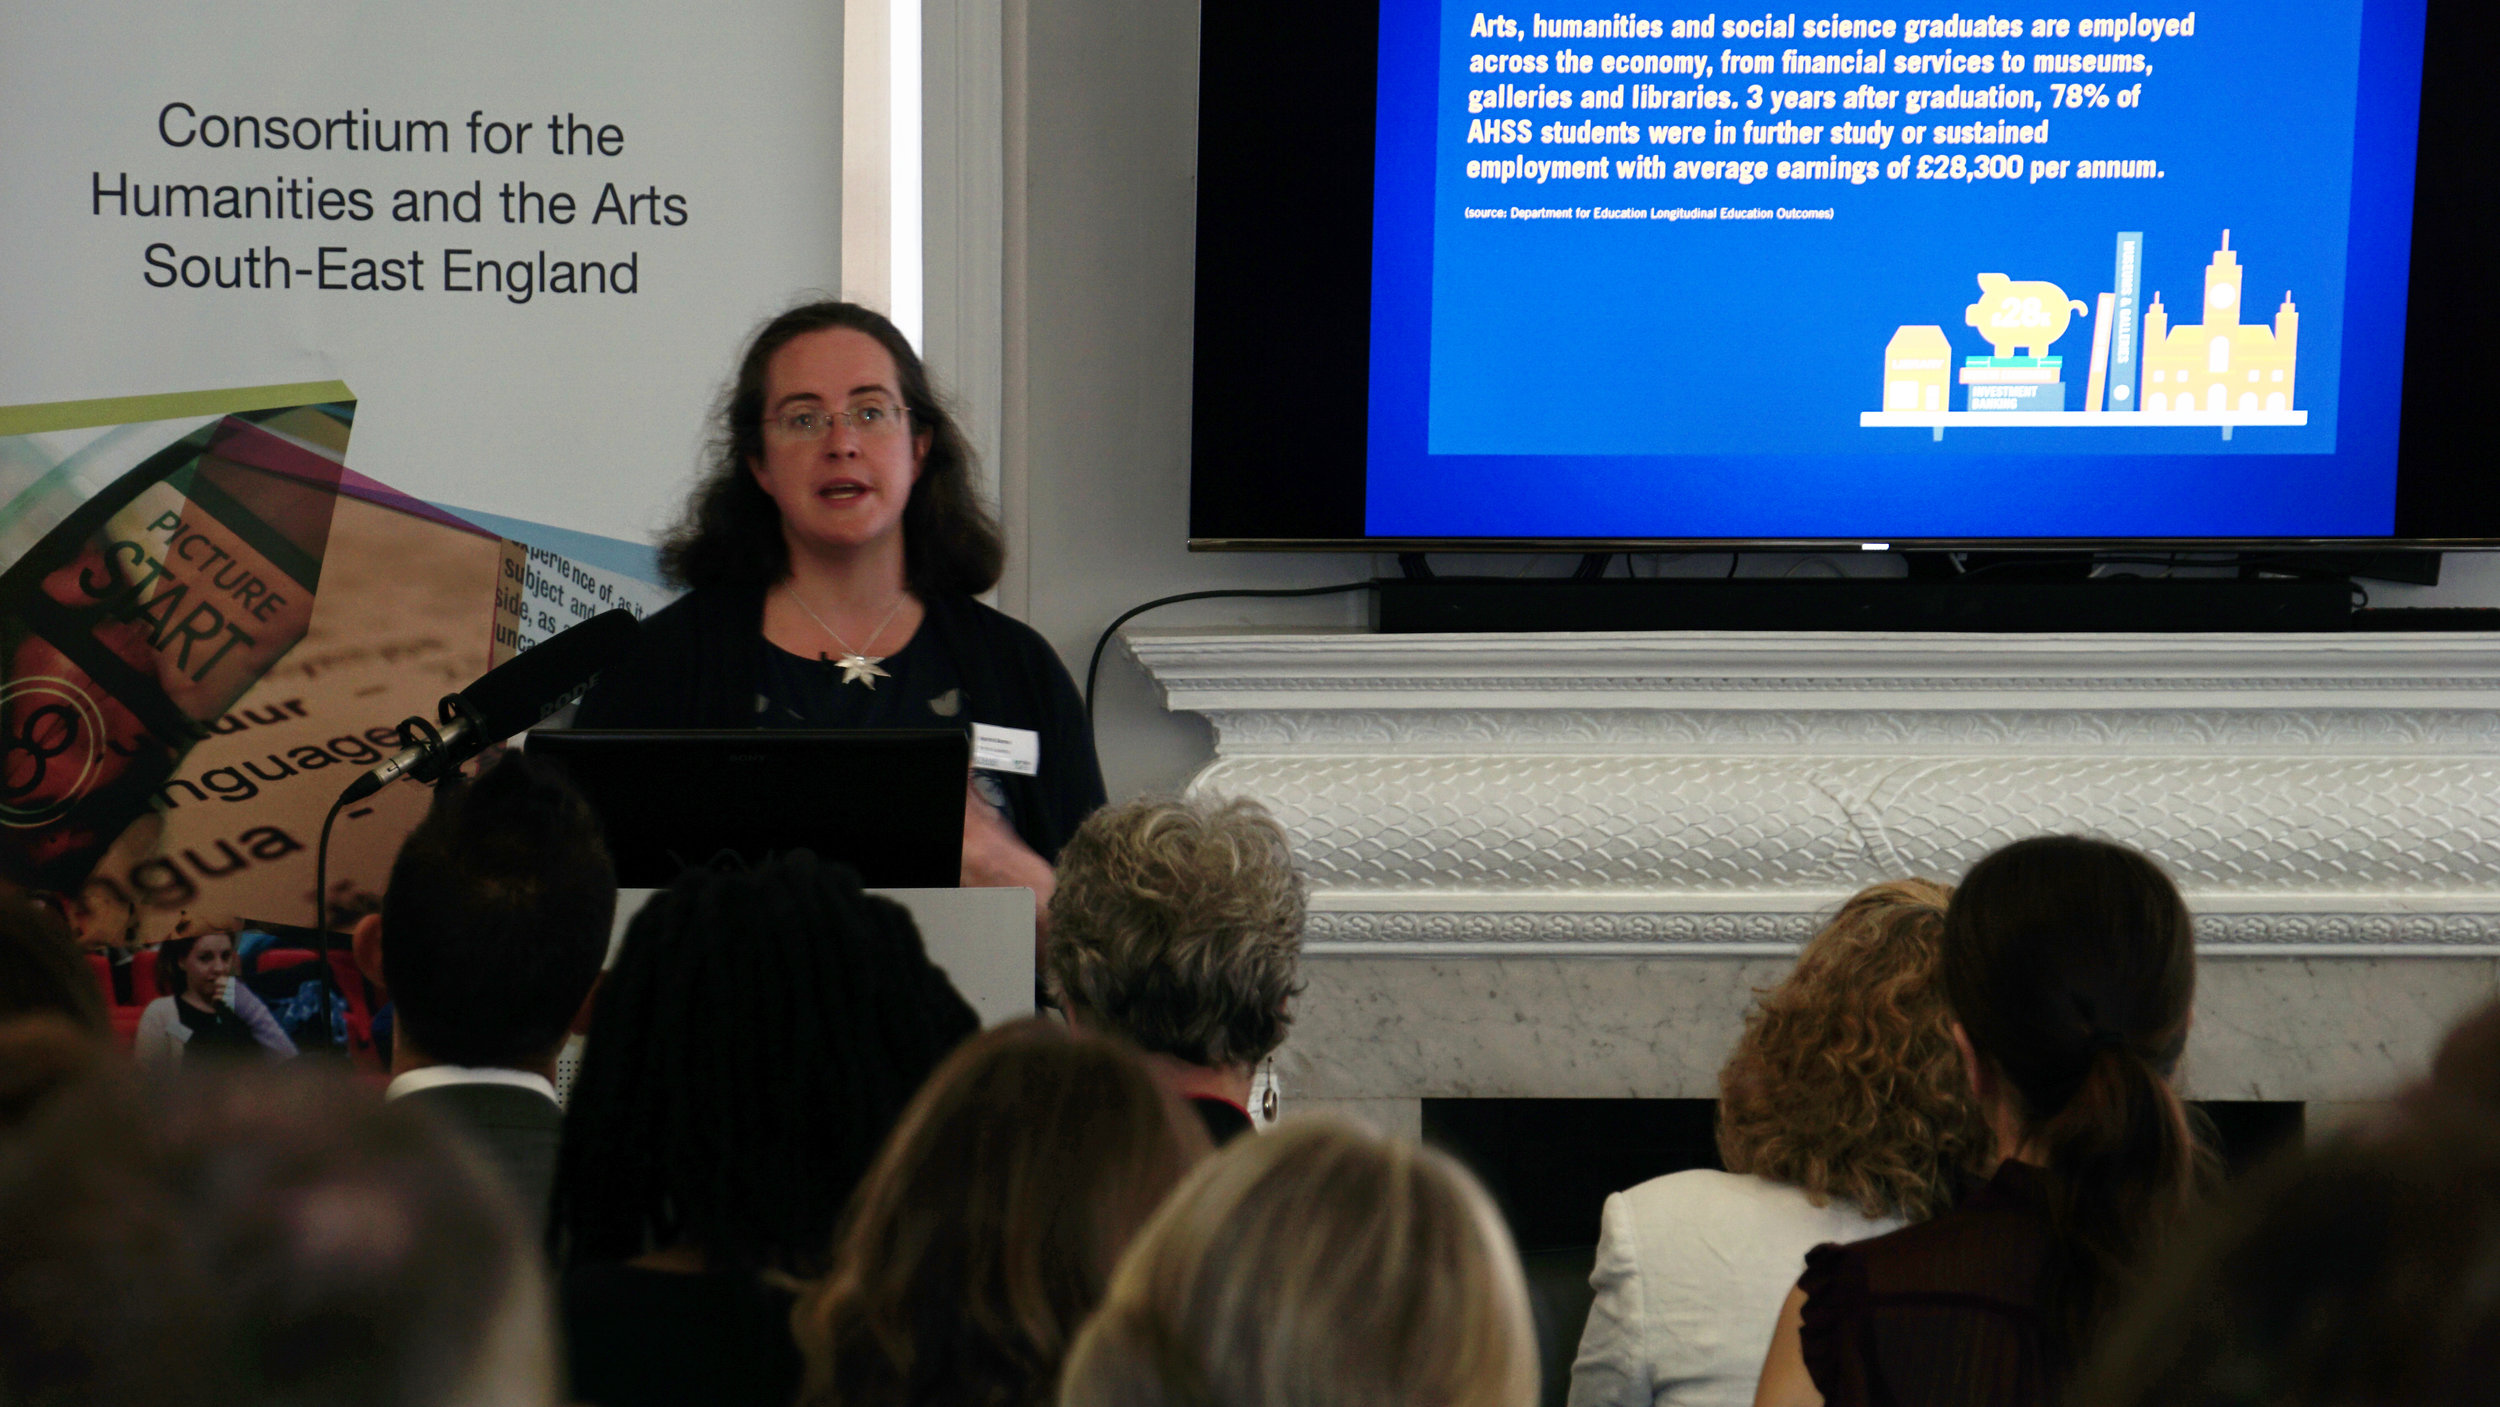 Celebrating skills in the Arts, Humanities and Social Sciences: The British Academy's flagship project  Harriet Barnes, Head of Policy (Higher Education and Skills), British Academy